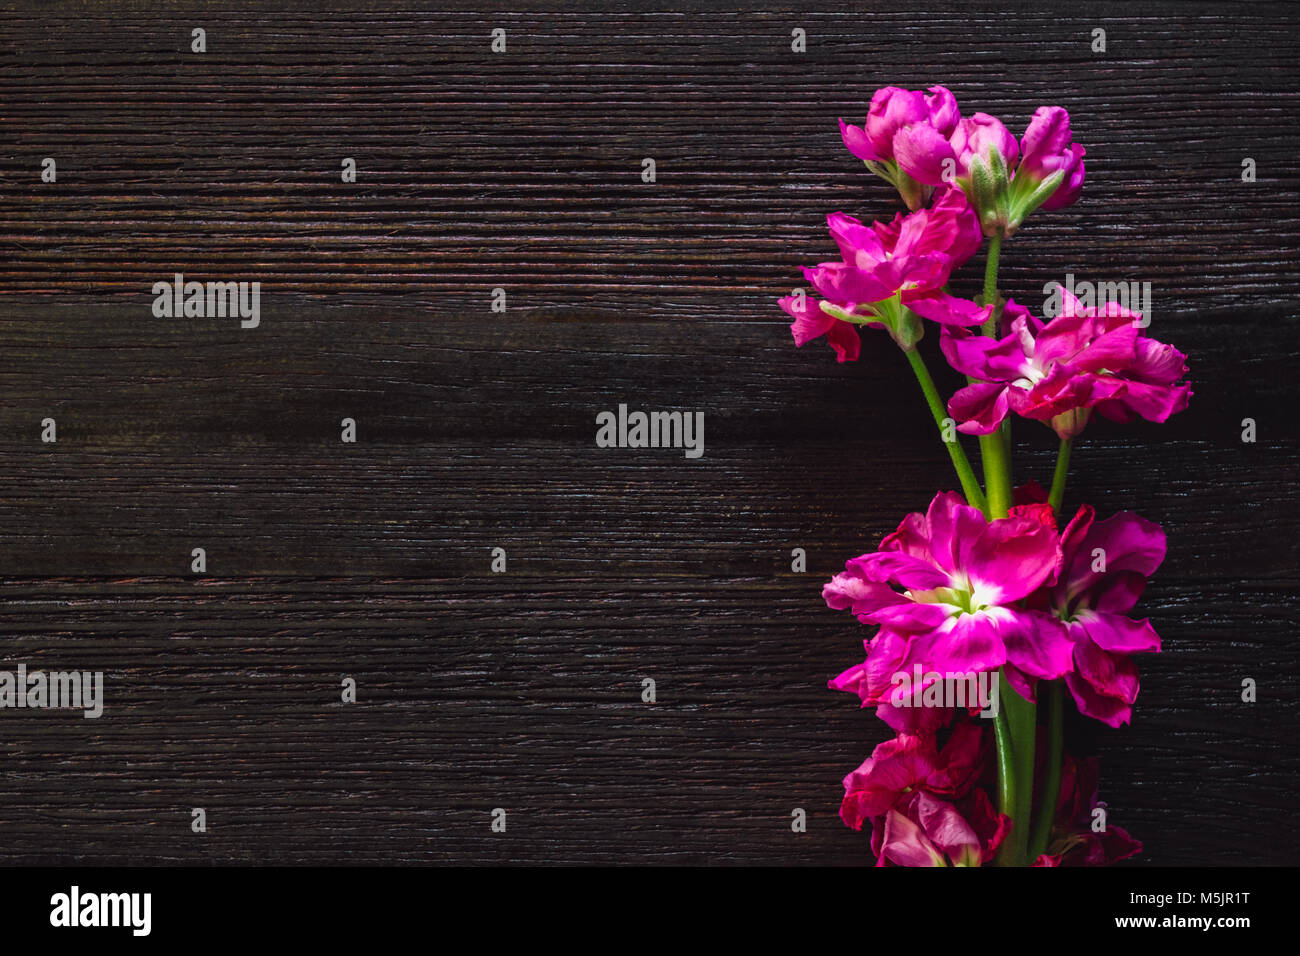 Pink Freesia on Dark Table with Space for Copy - Stock Image